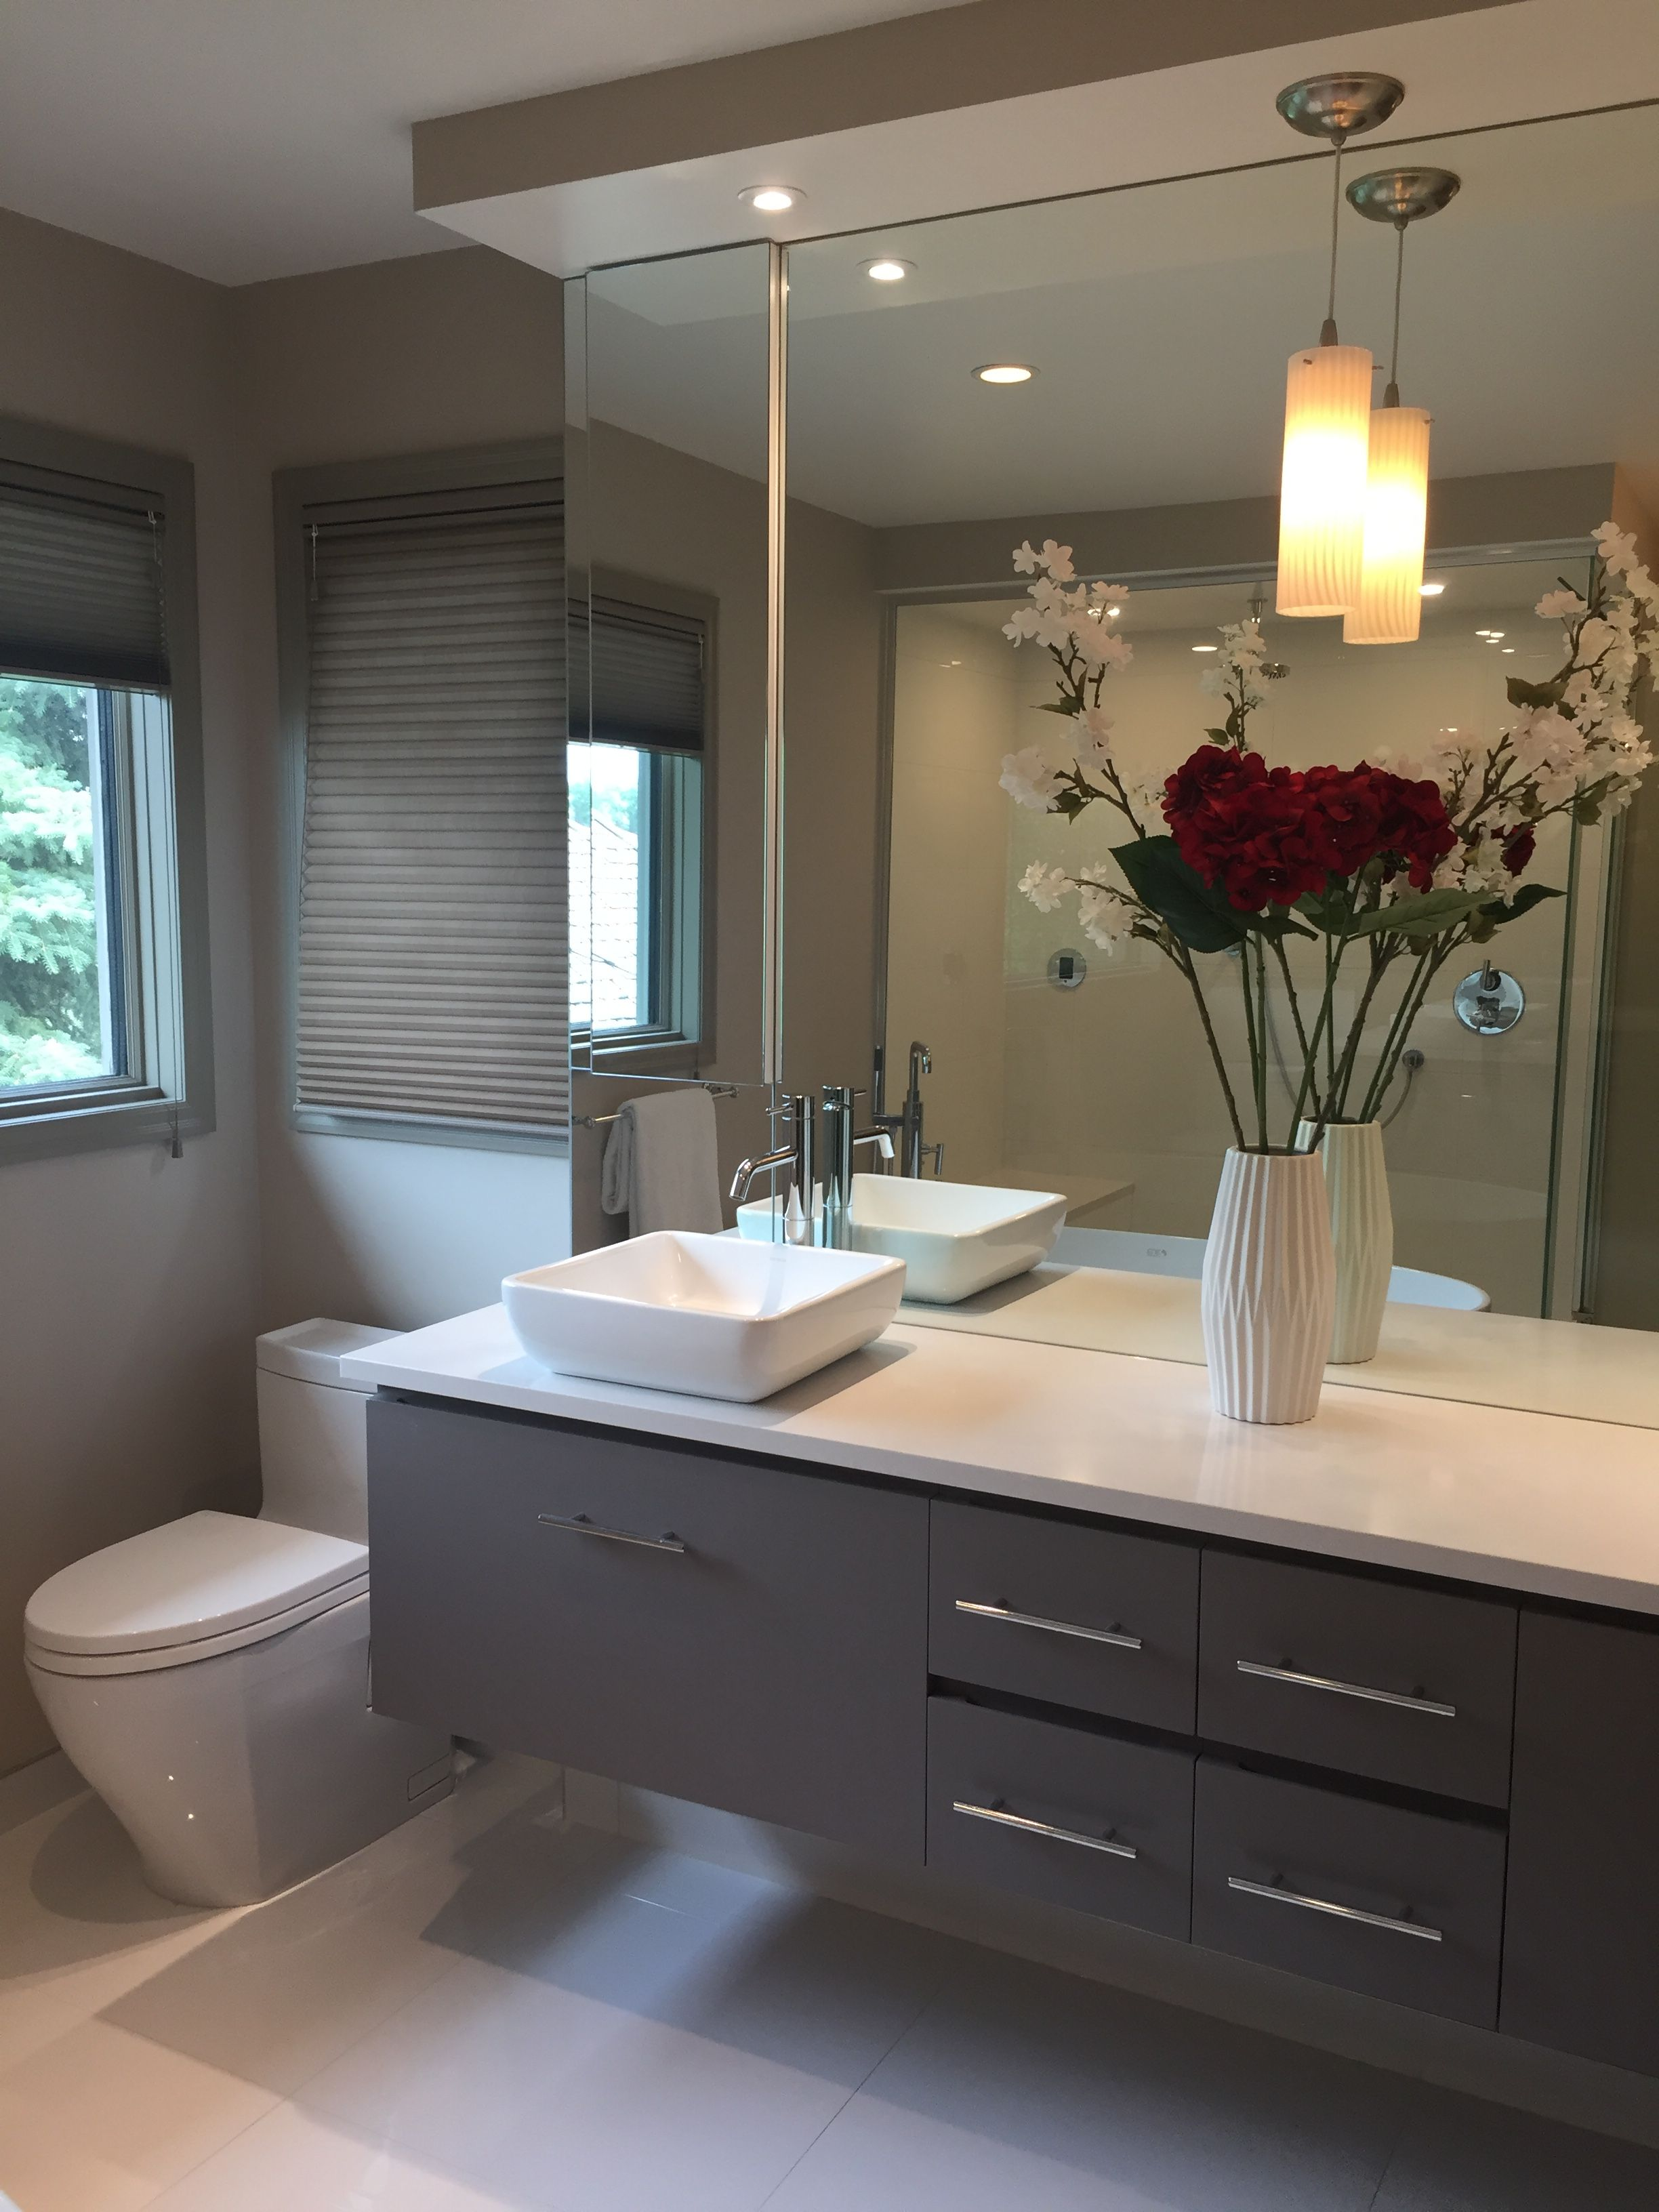 One Of Our Most Recent Renovations Done By Dynasty Bathrooms In Winnipeg What Can We Do To Showcase Your Bathroom Bath Renovation Bathroom Kitchen Renovation